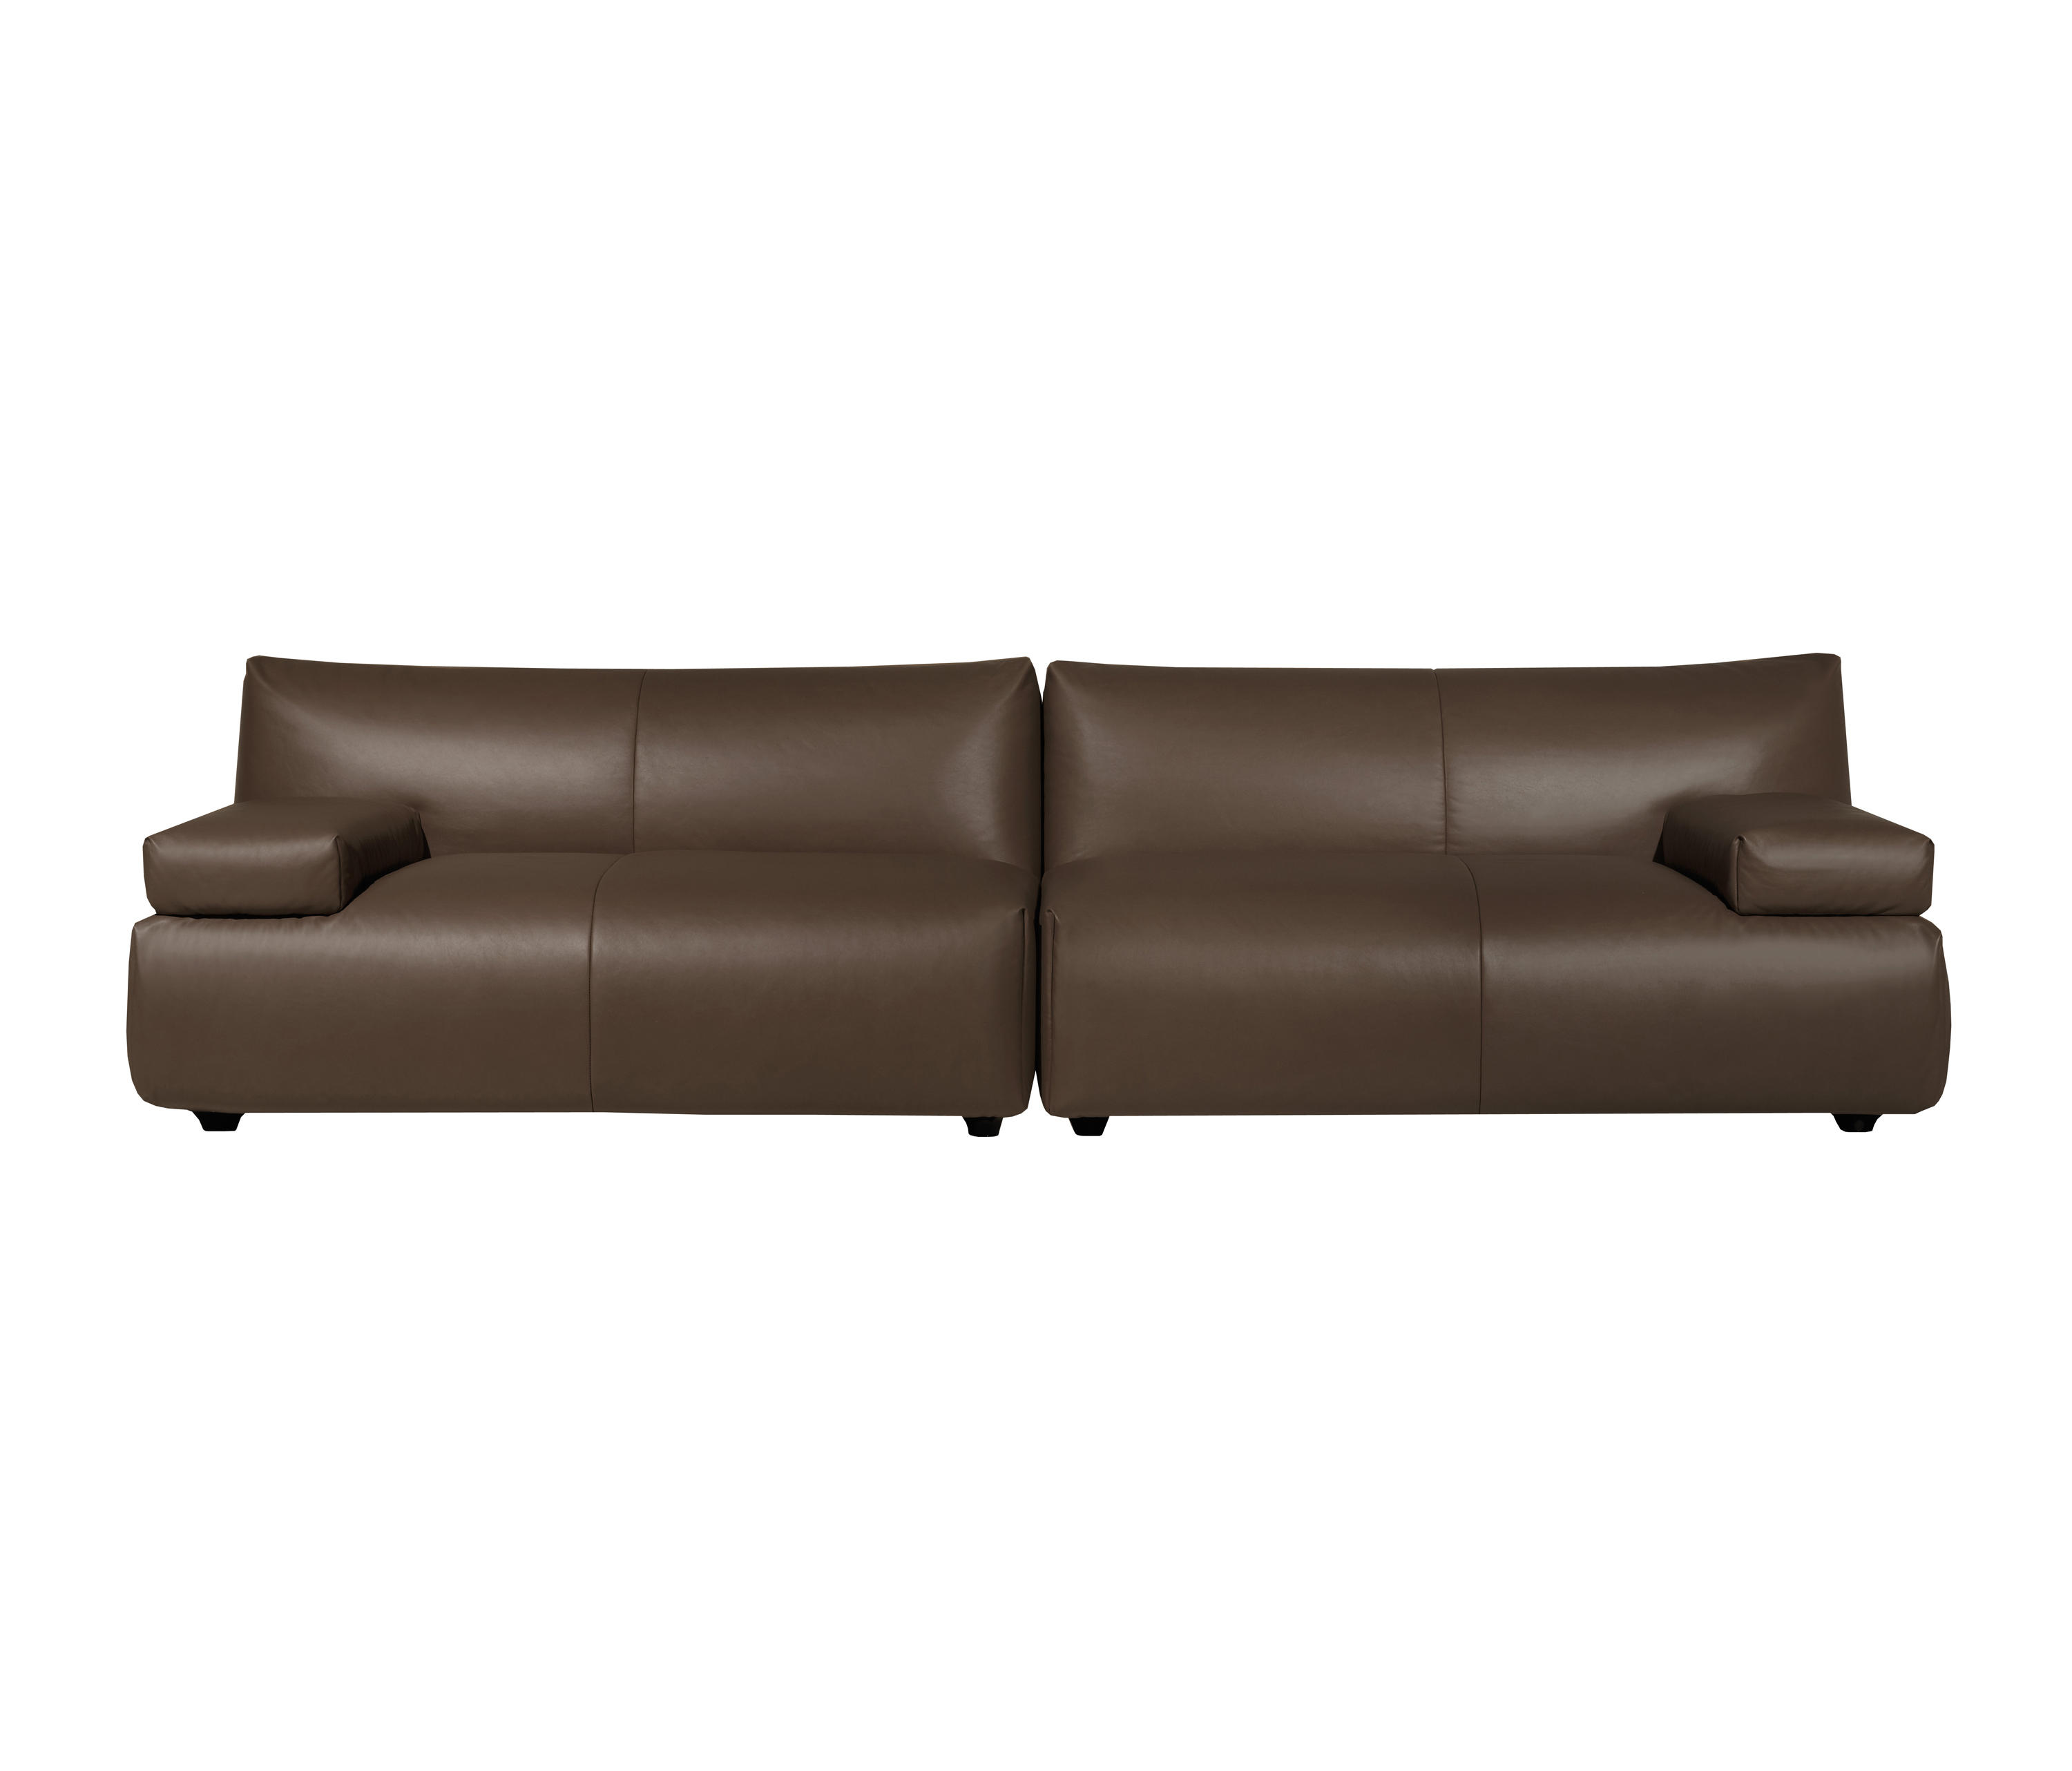 Agadir Sectional Sofa Sofas Von Fendi Casa Architonic